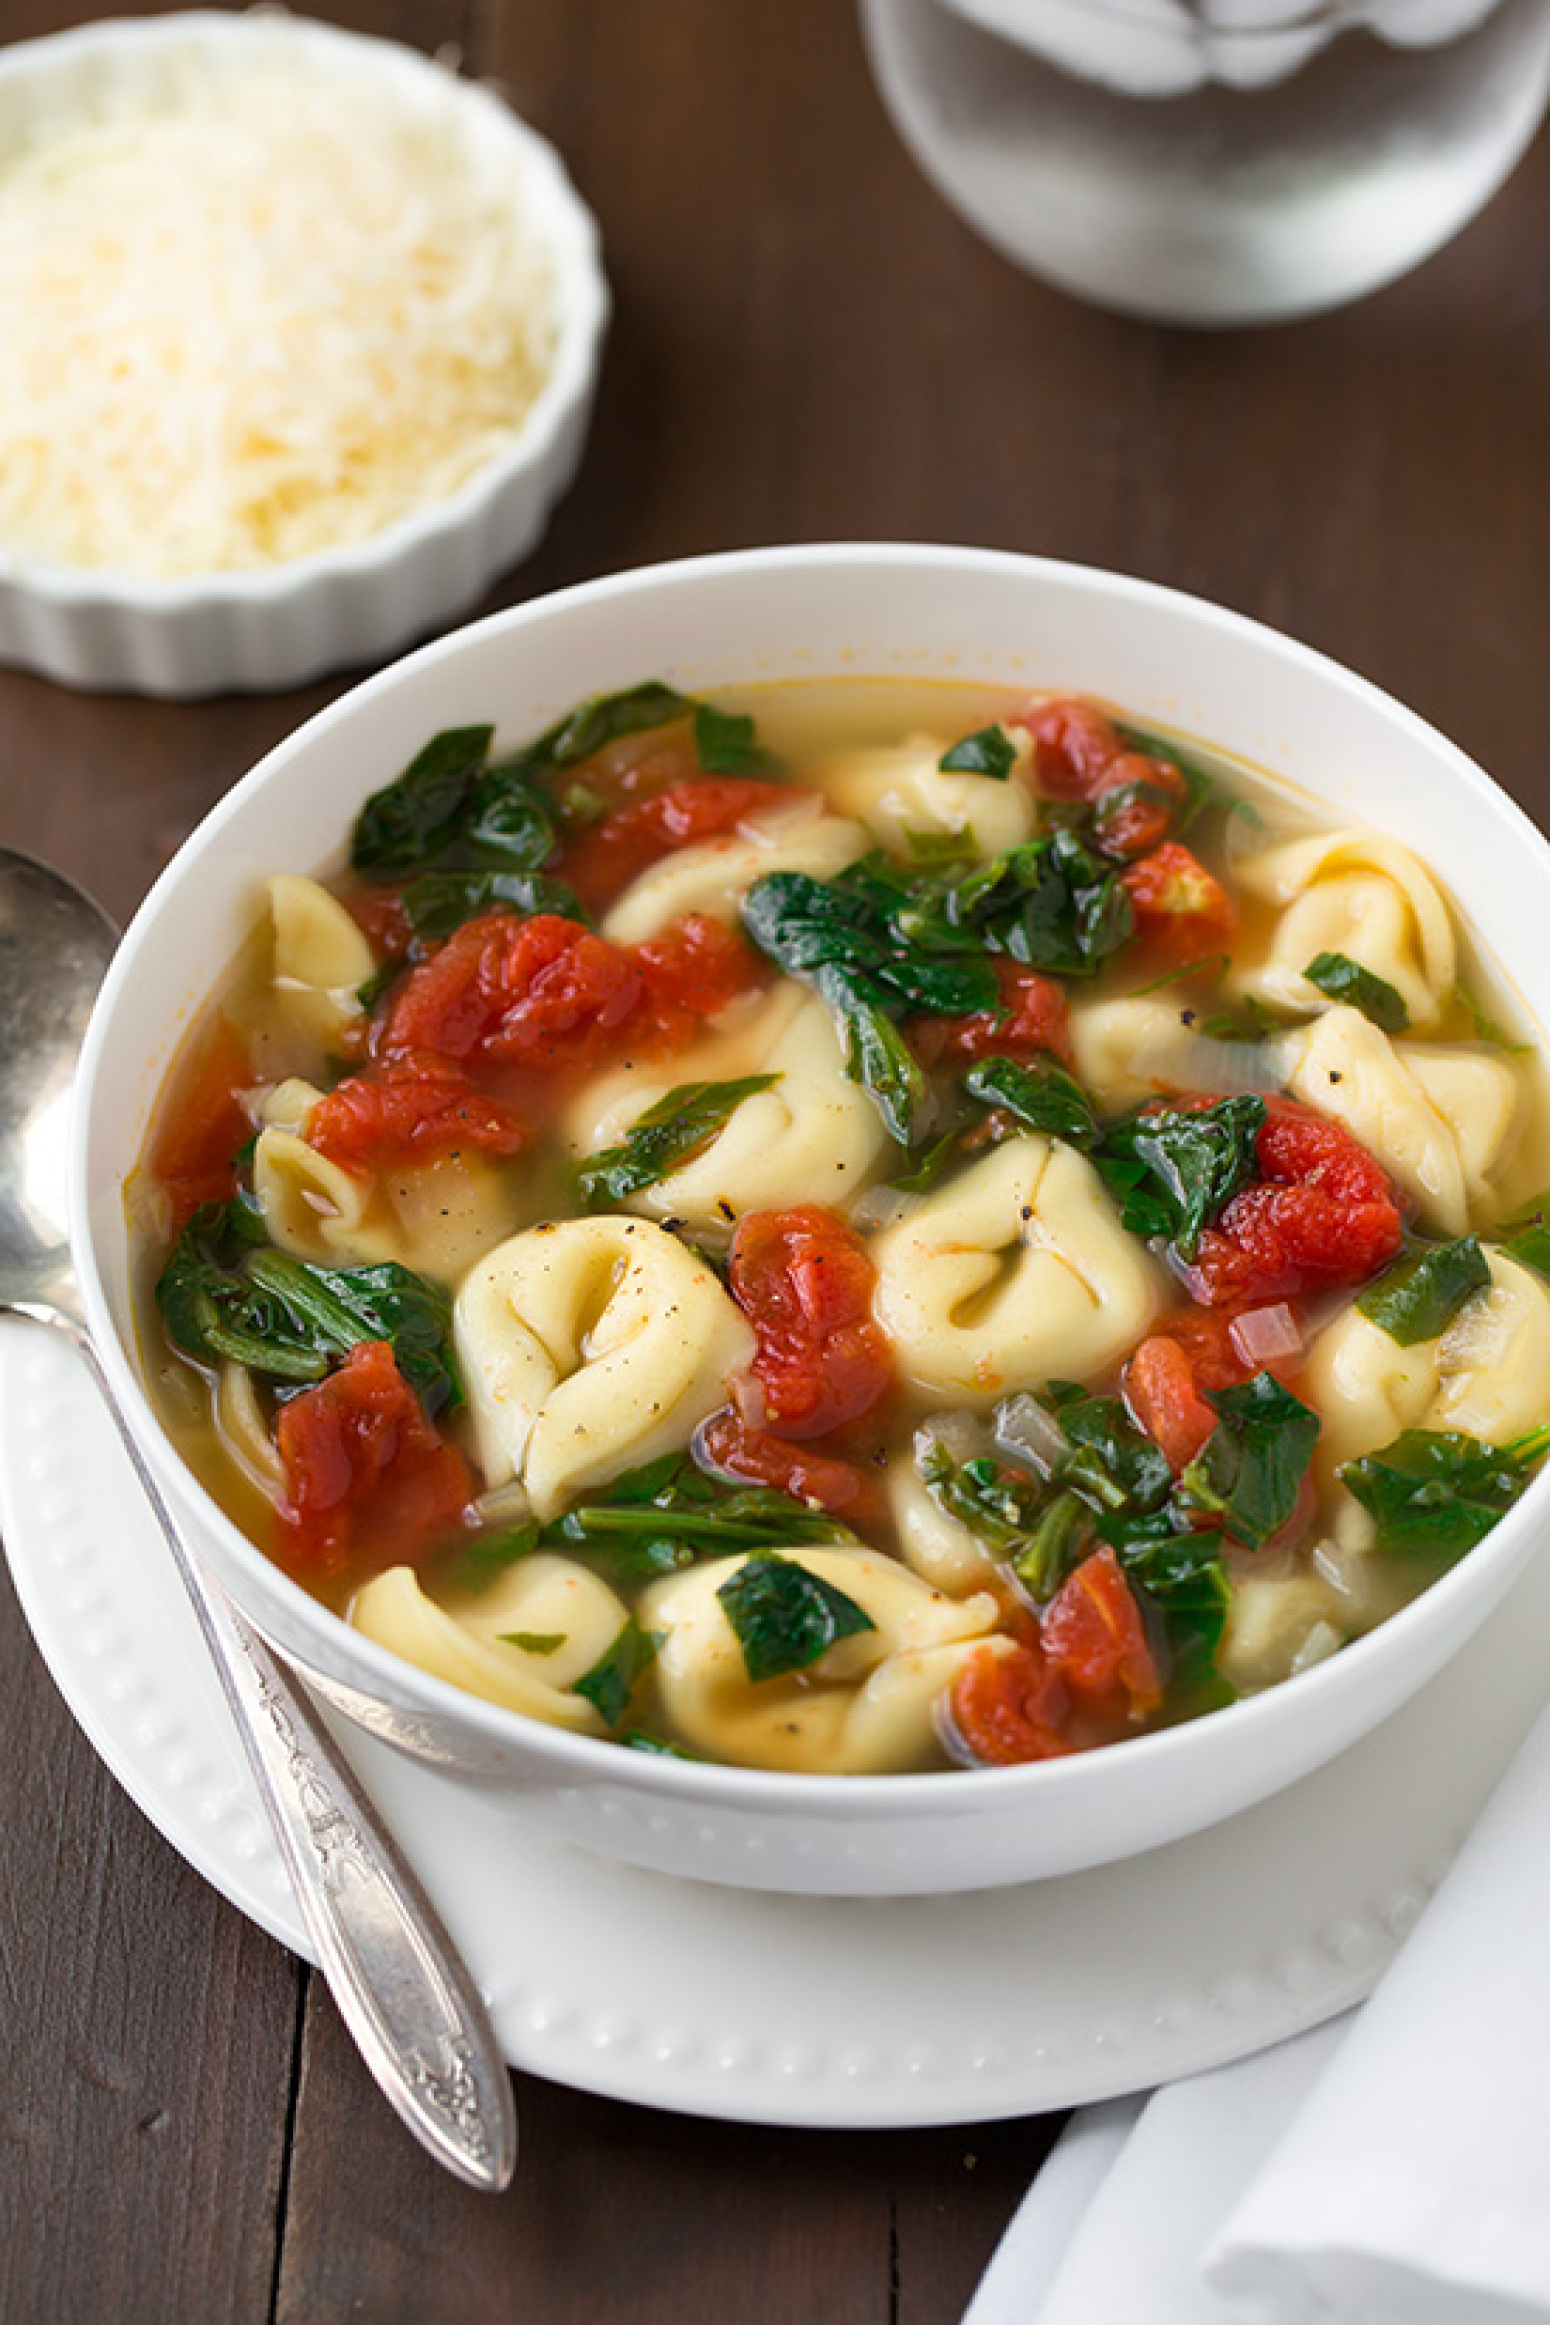 ... Tomato and Garlic Tortellini Soup Recipe | Just A Pinch Recipes